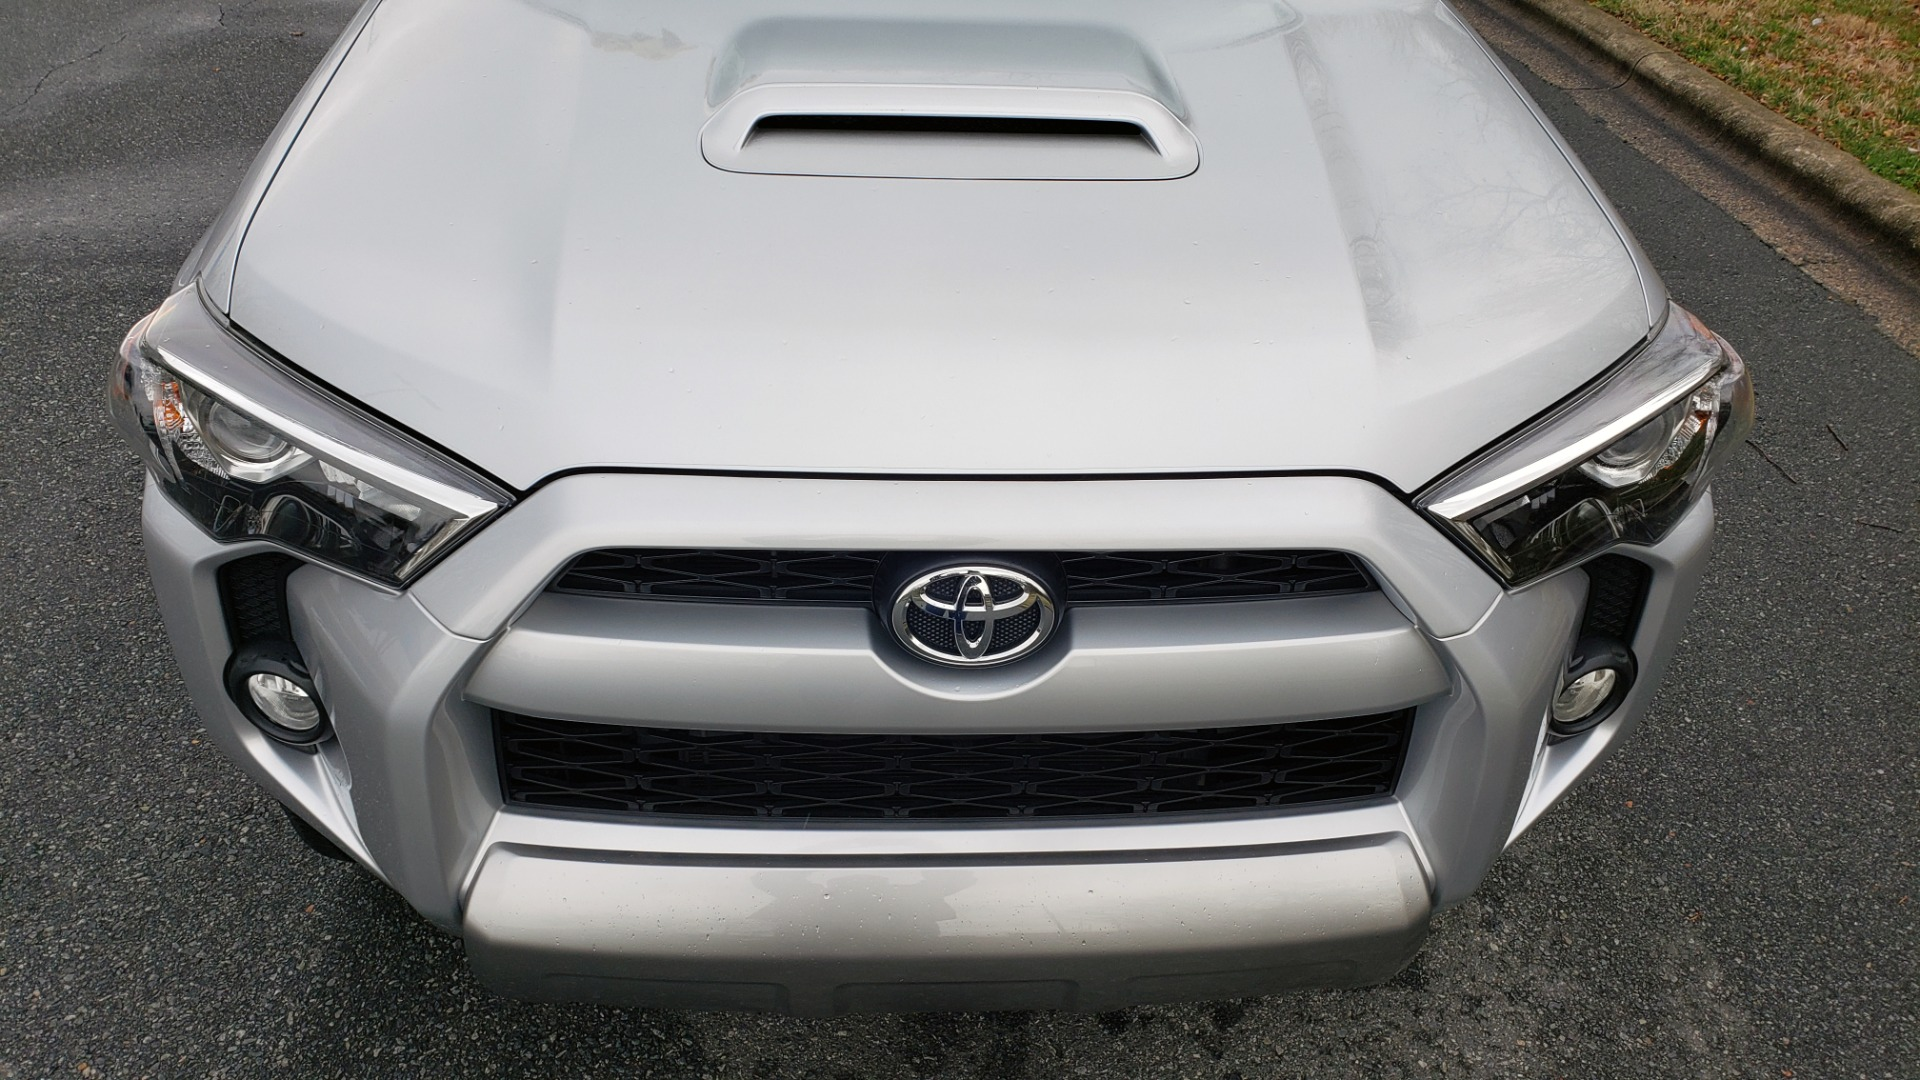 Used 2018 Toyota 4RUNNER TRD OFF-ROAD 4X4 / V6 / AUTO / LEATHER / LOW MILES! for sale Sold at Formula Imports in Charlotte NC 28227 18